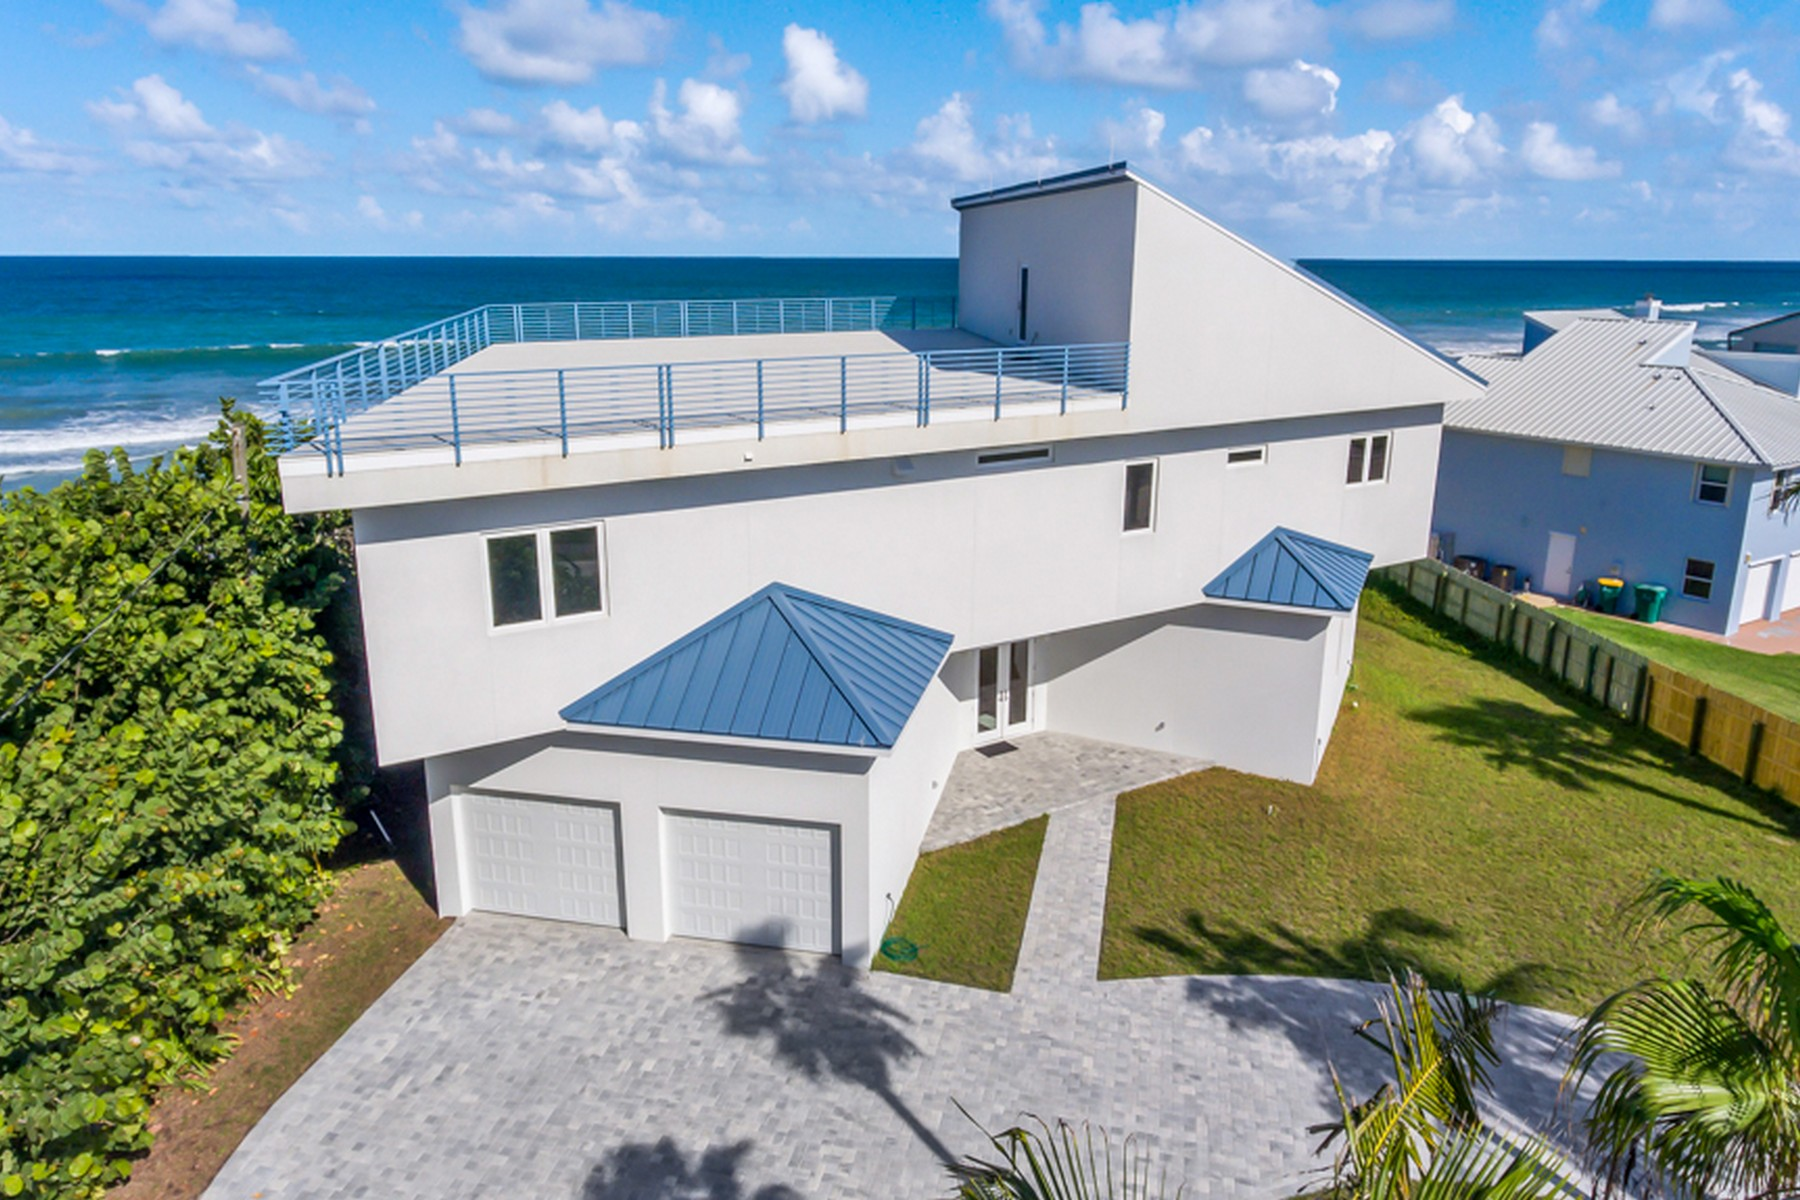 Contemporary Oceanfront Home 5285 S. Highway A1A Melbourne Beach, Florida 32951 Estados Unidos